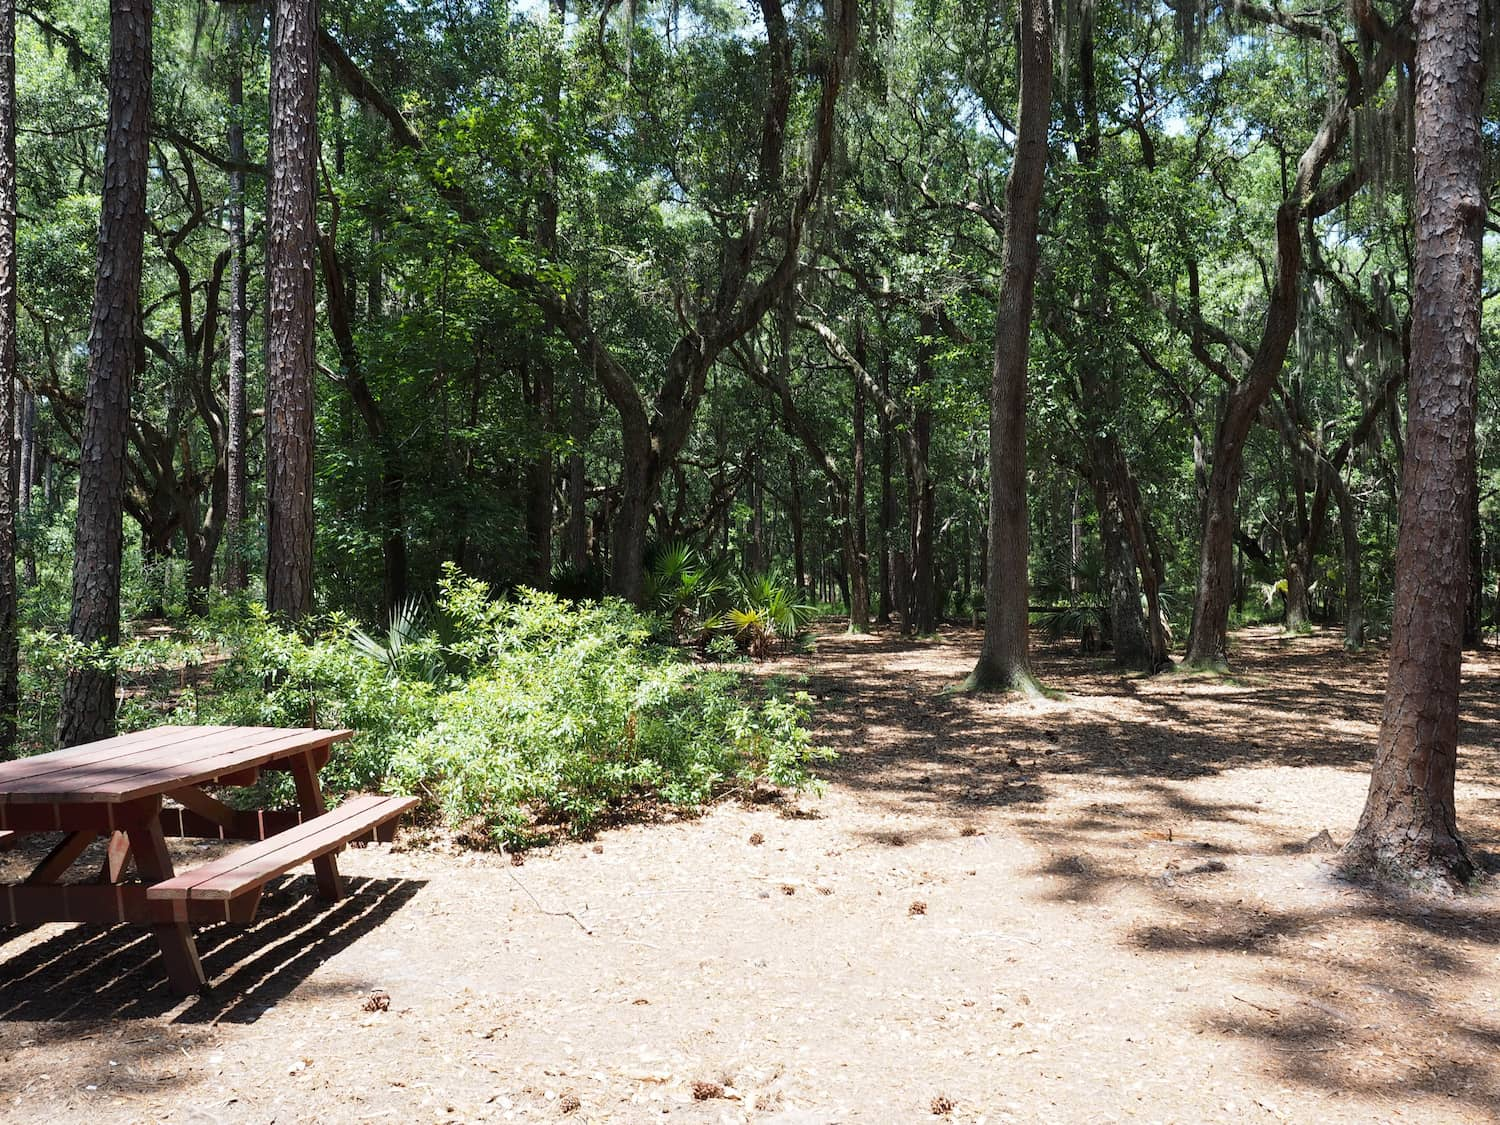 trees and picnic bench